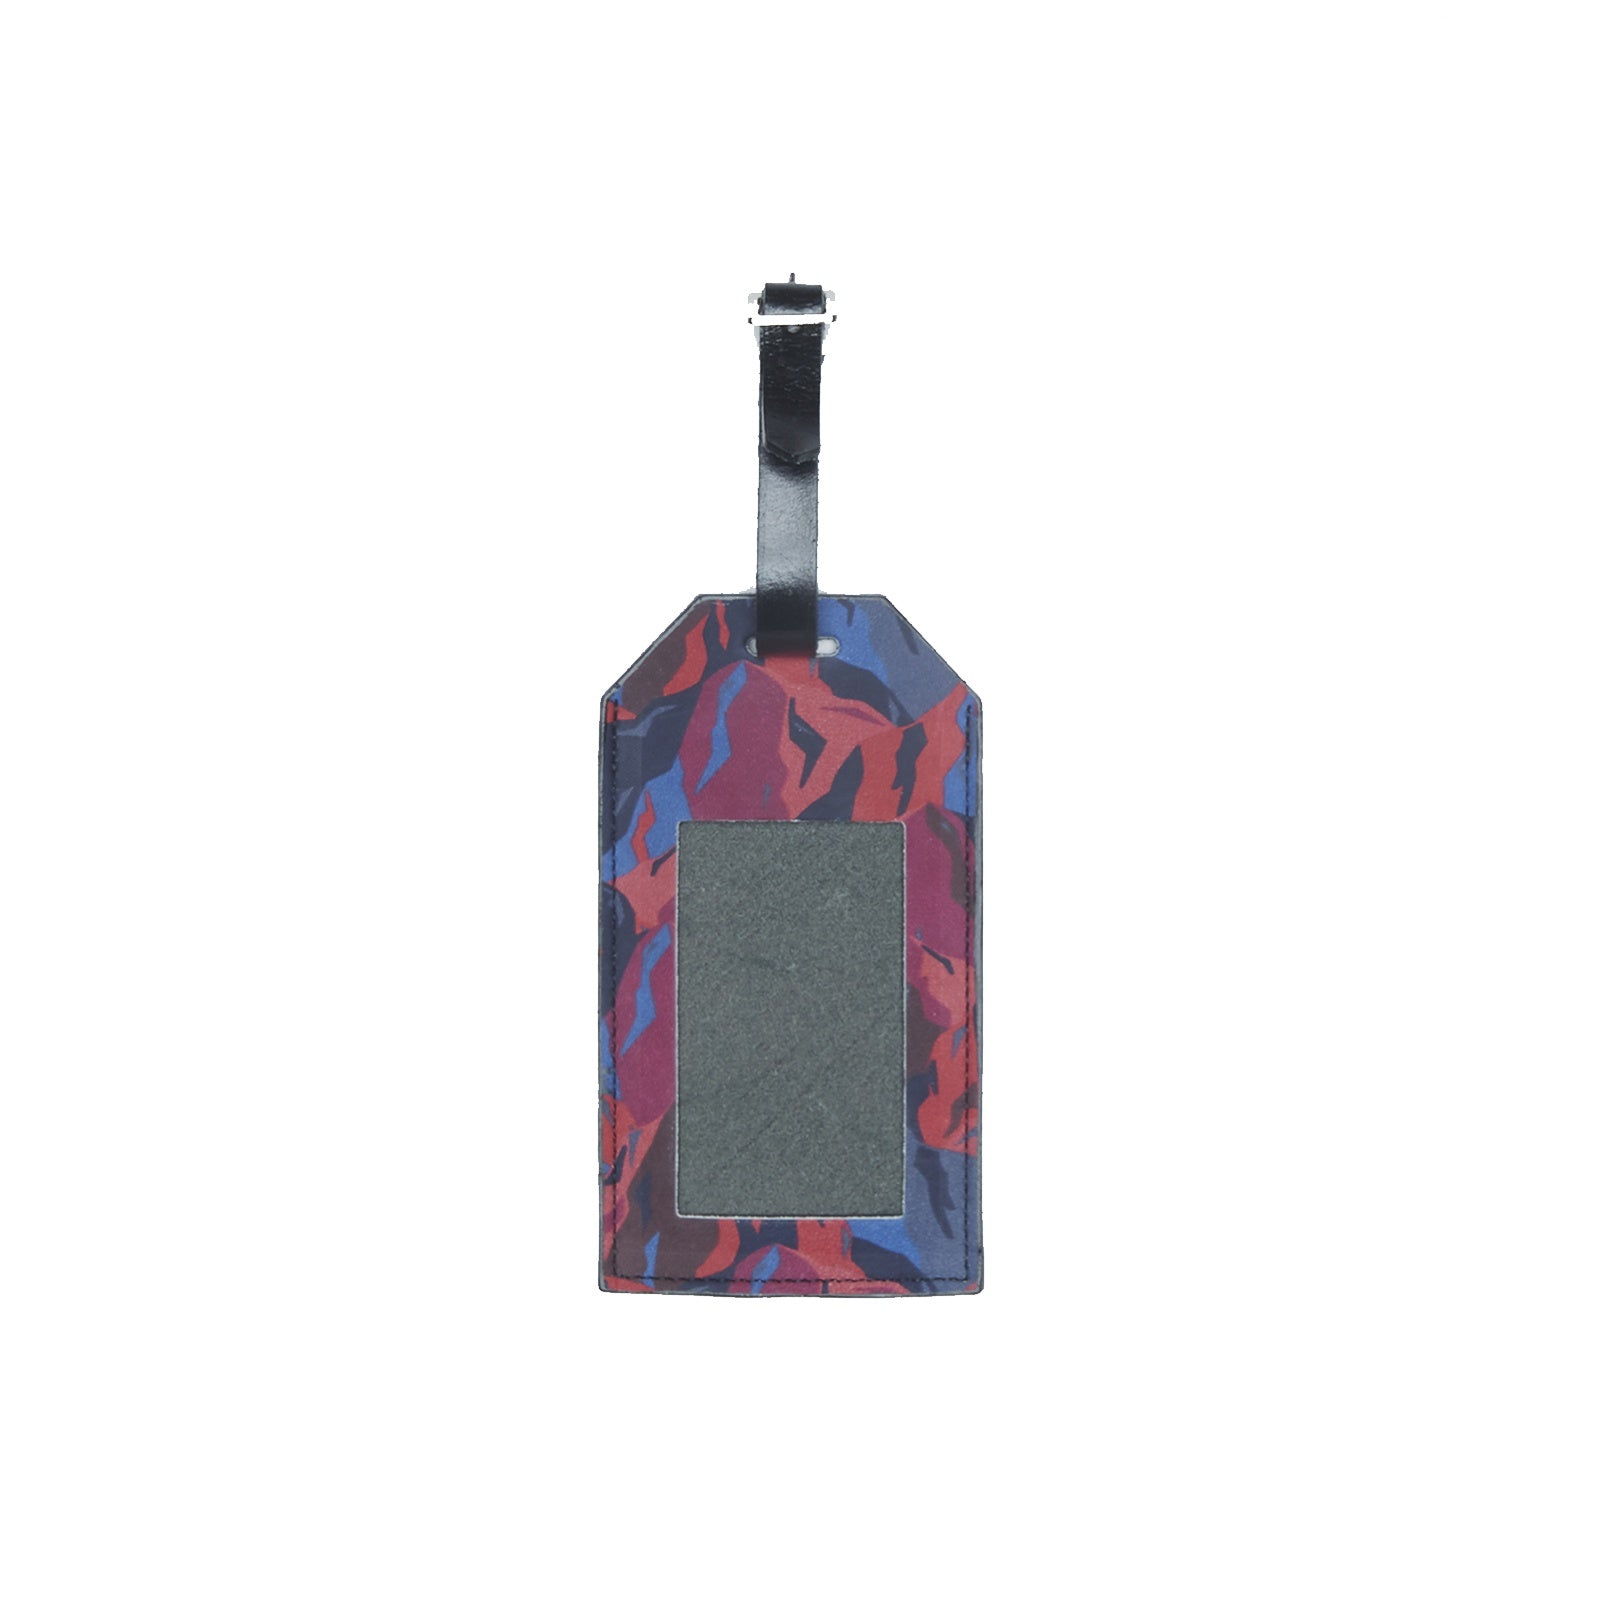 WORLD Liberty Leather Luggage Tag - Abstract Mountains